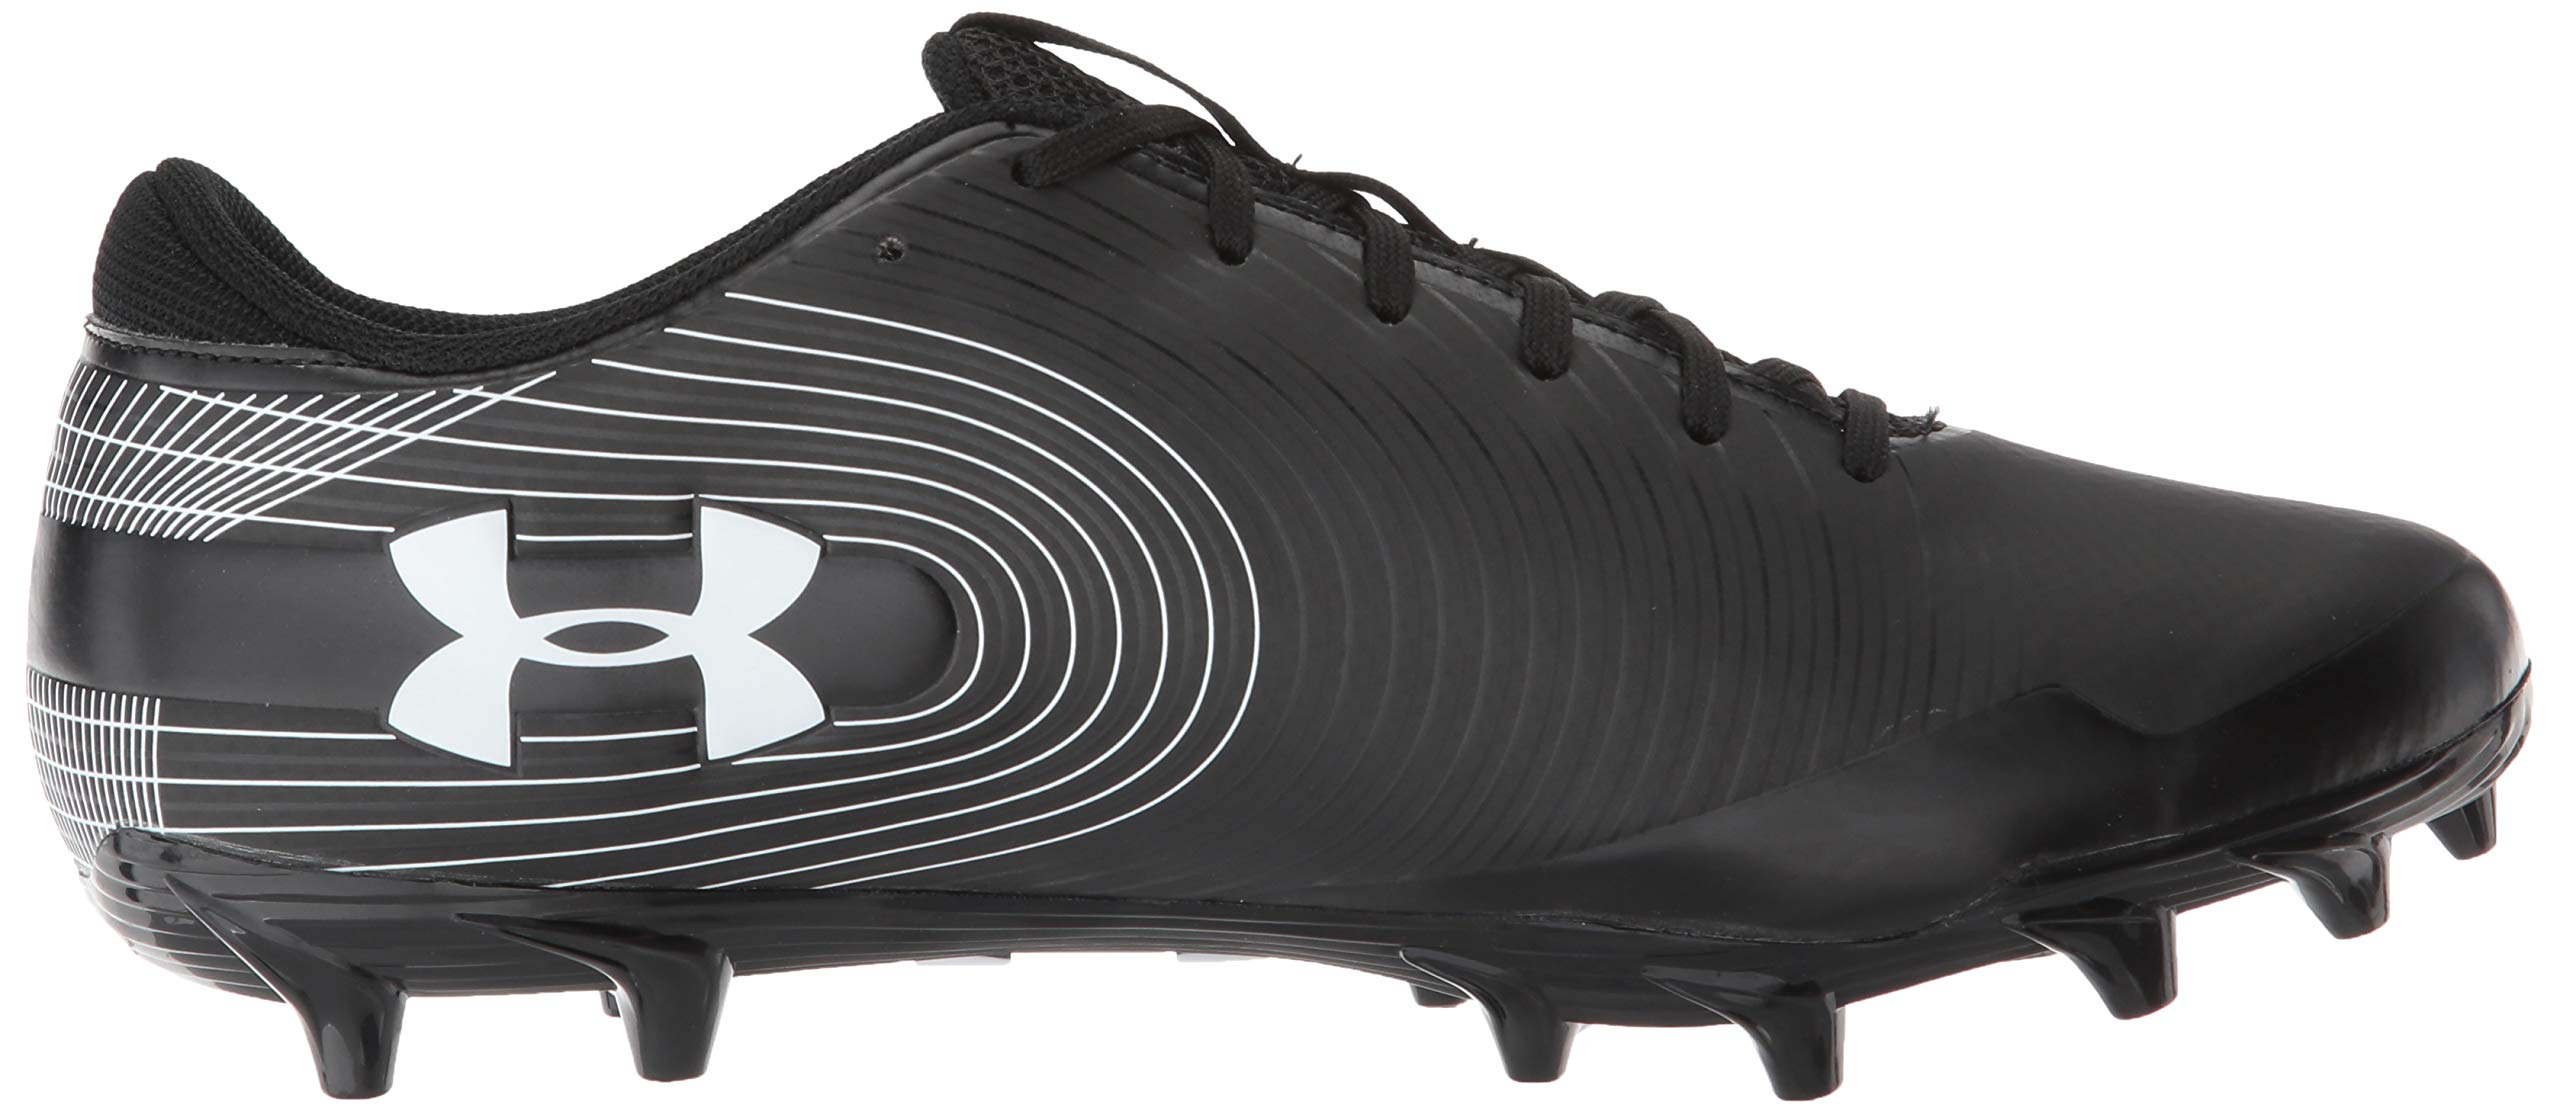 Under Armour Men's Speed Phantom MC Football Shoe Black (001)/White 6.5 by Under Armour (Image #7)